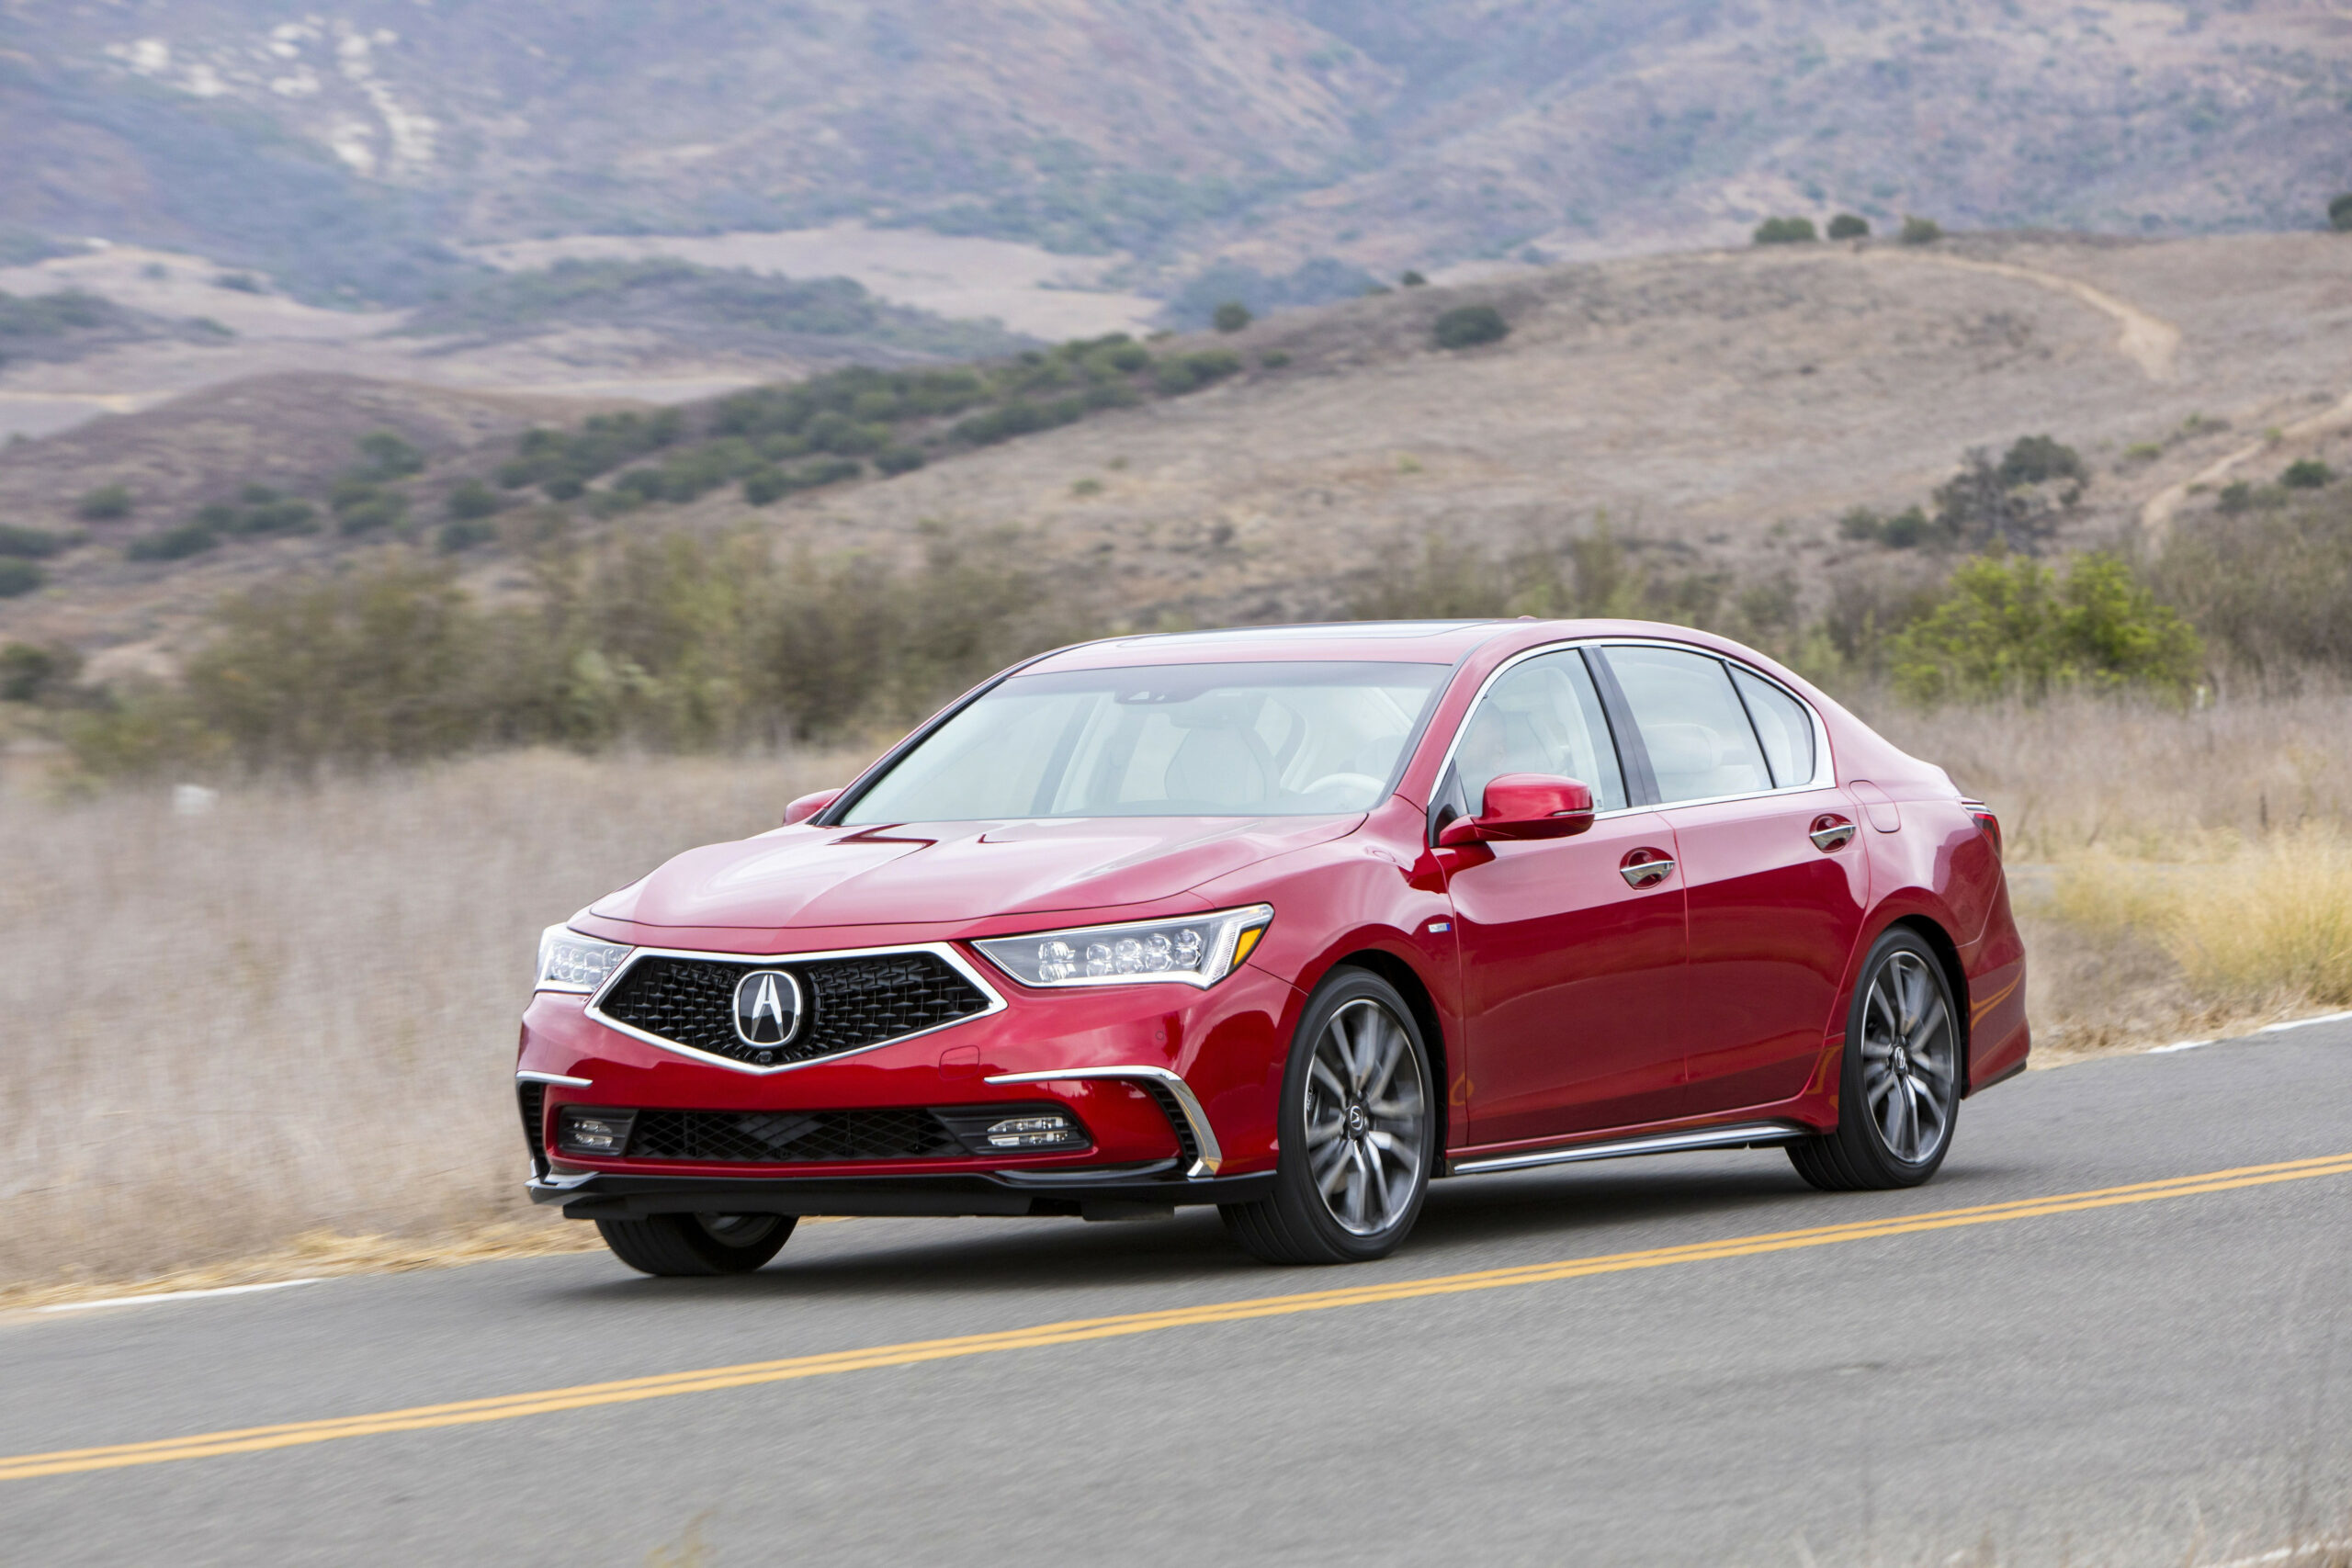 8 Acura RLX Review, Pricing, and Specs